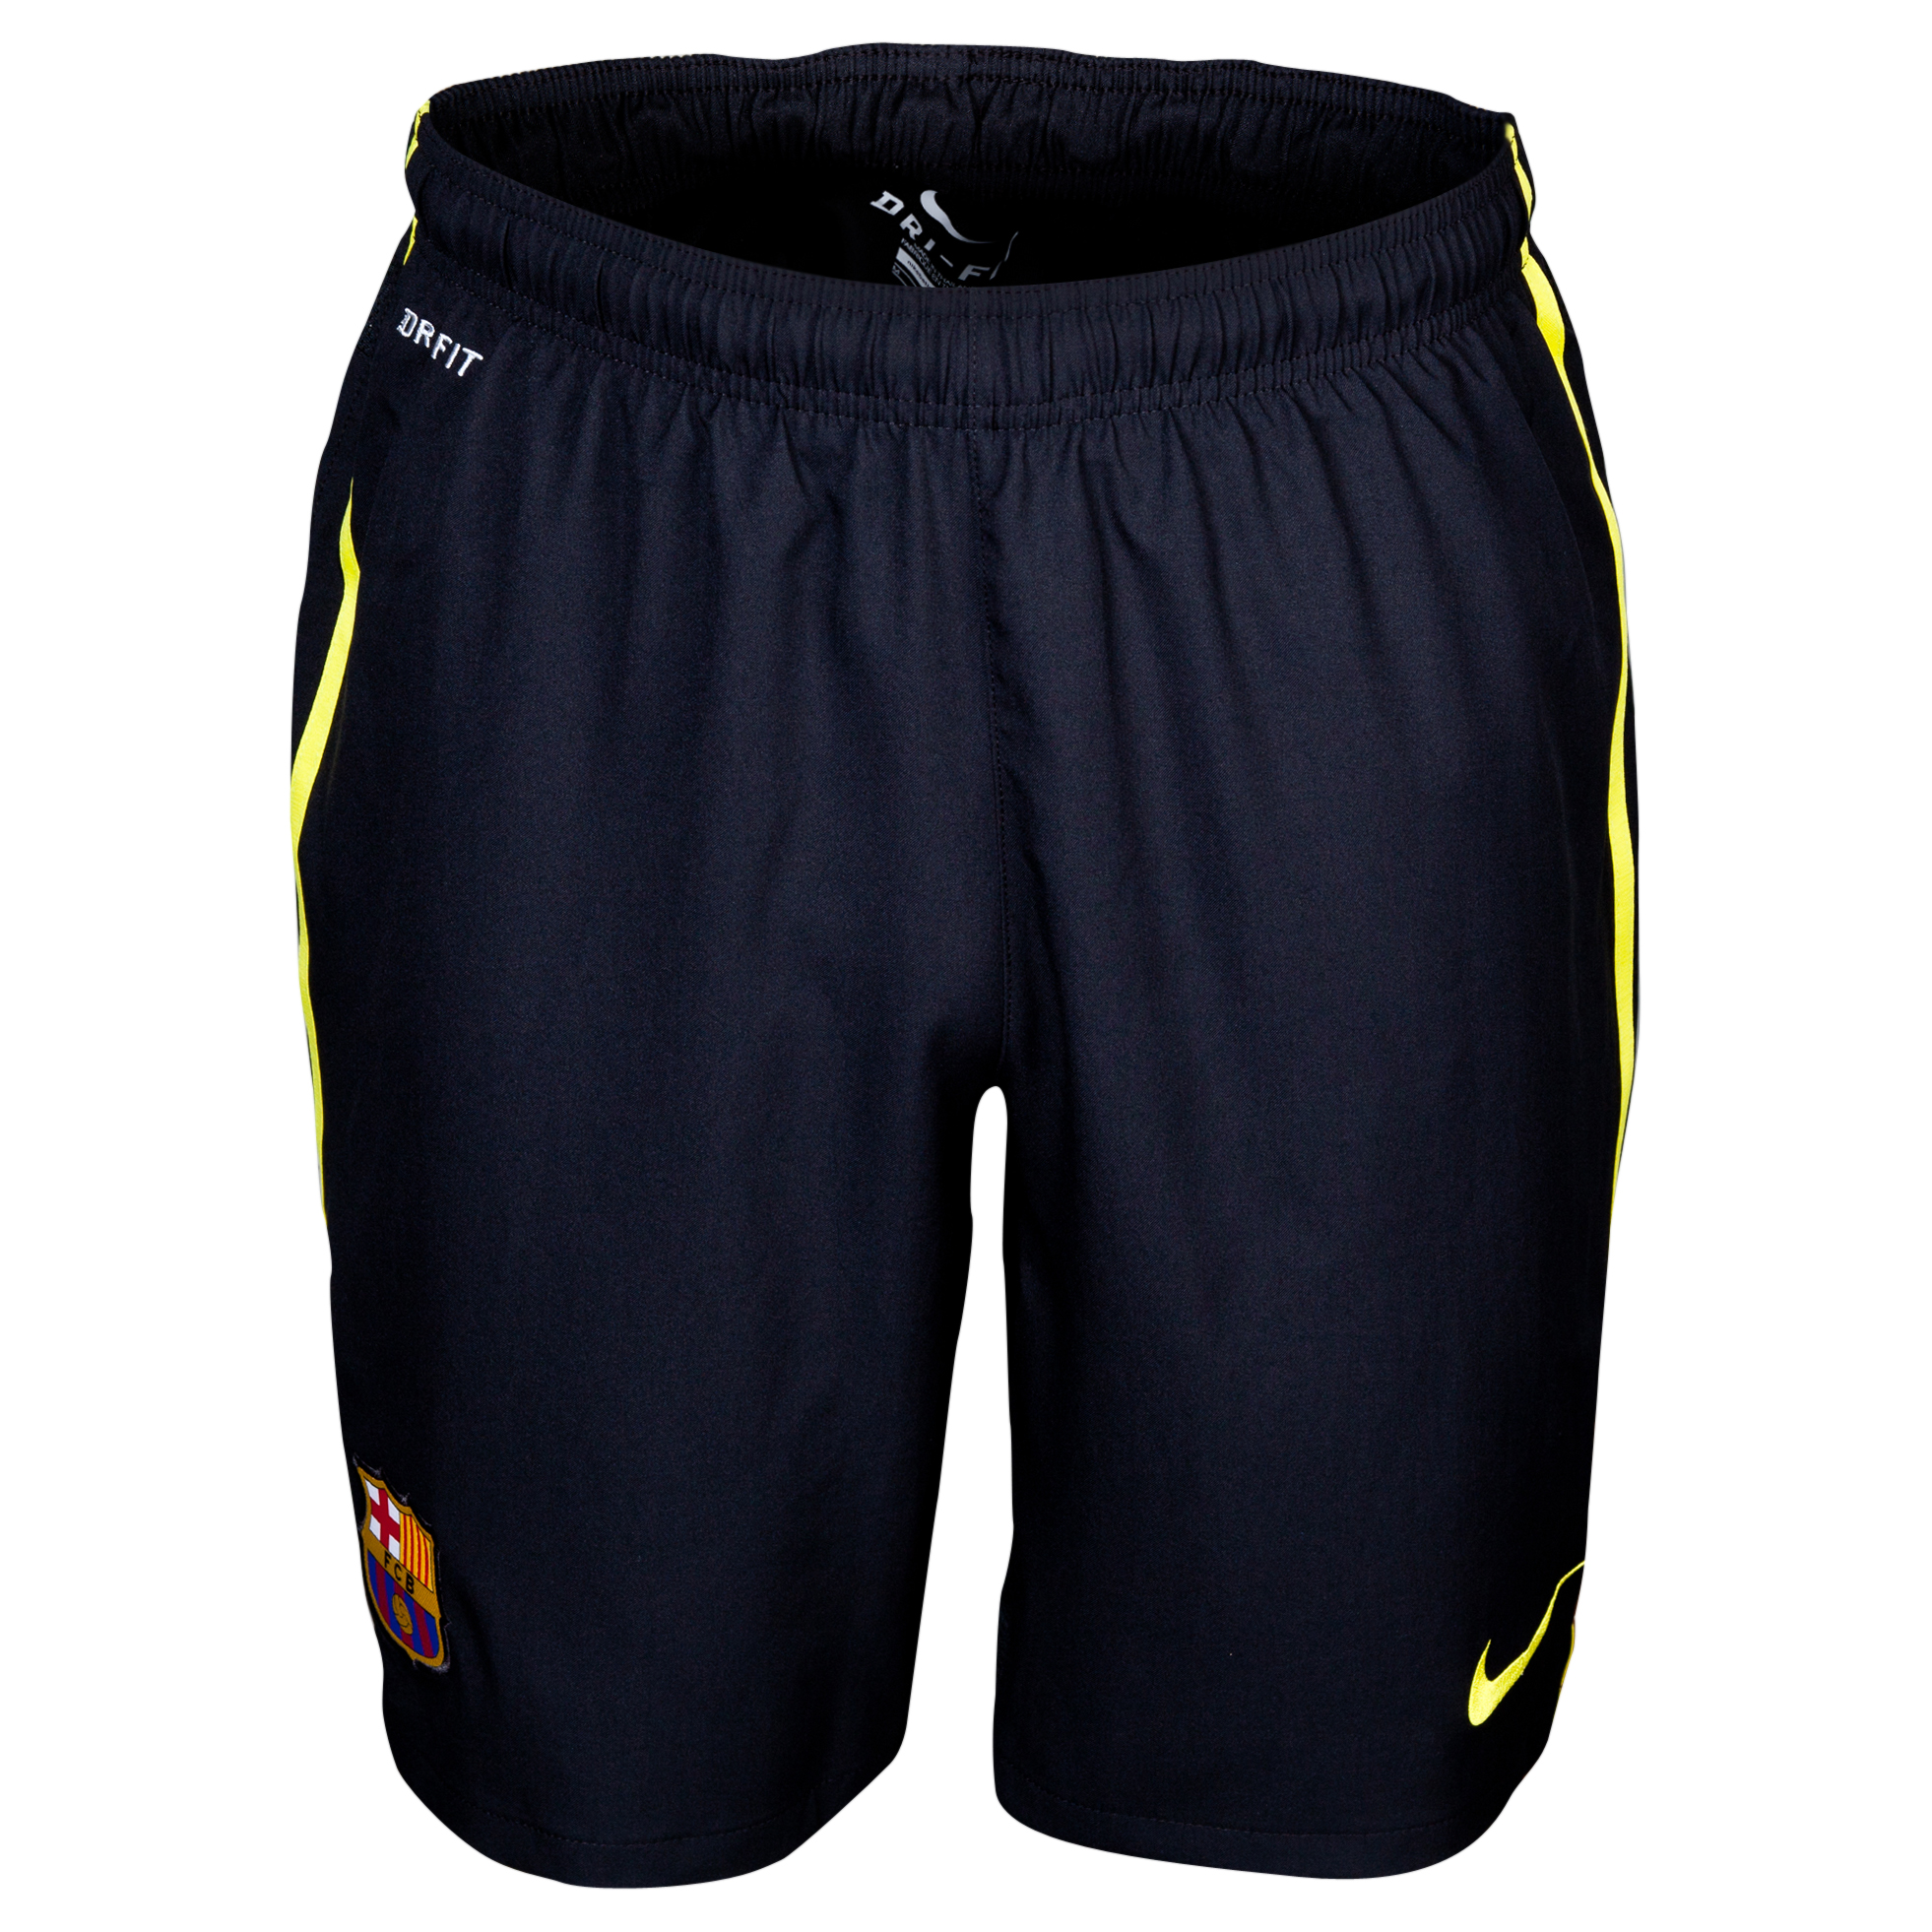 Barcelona Third Shorts 2013/14 - Kids